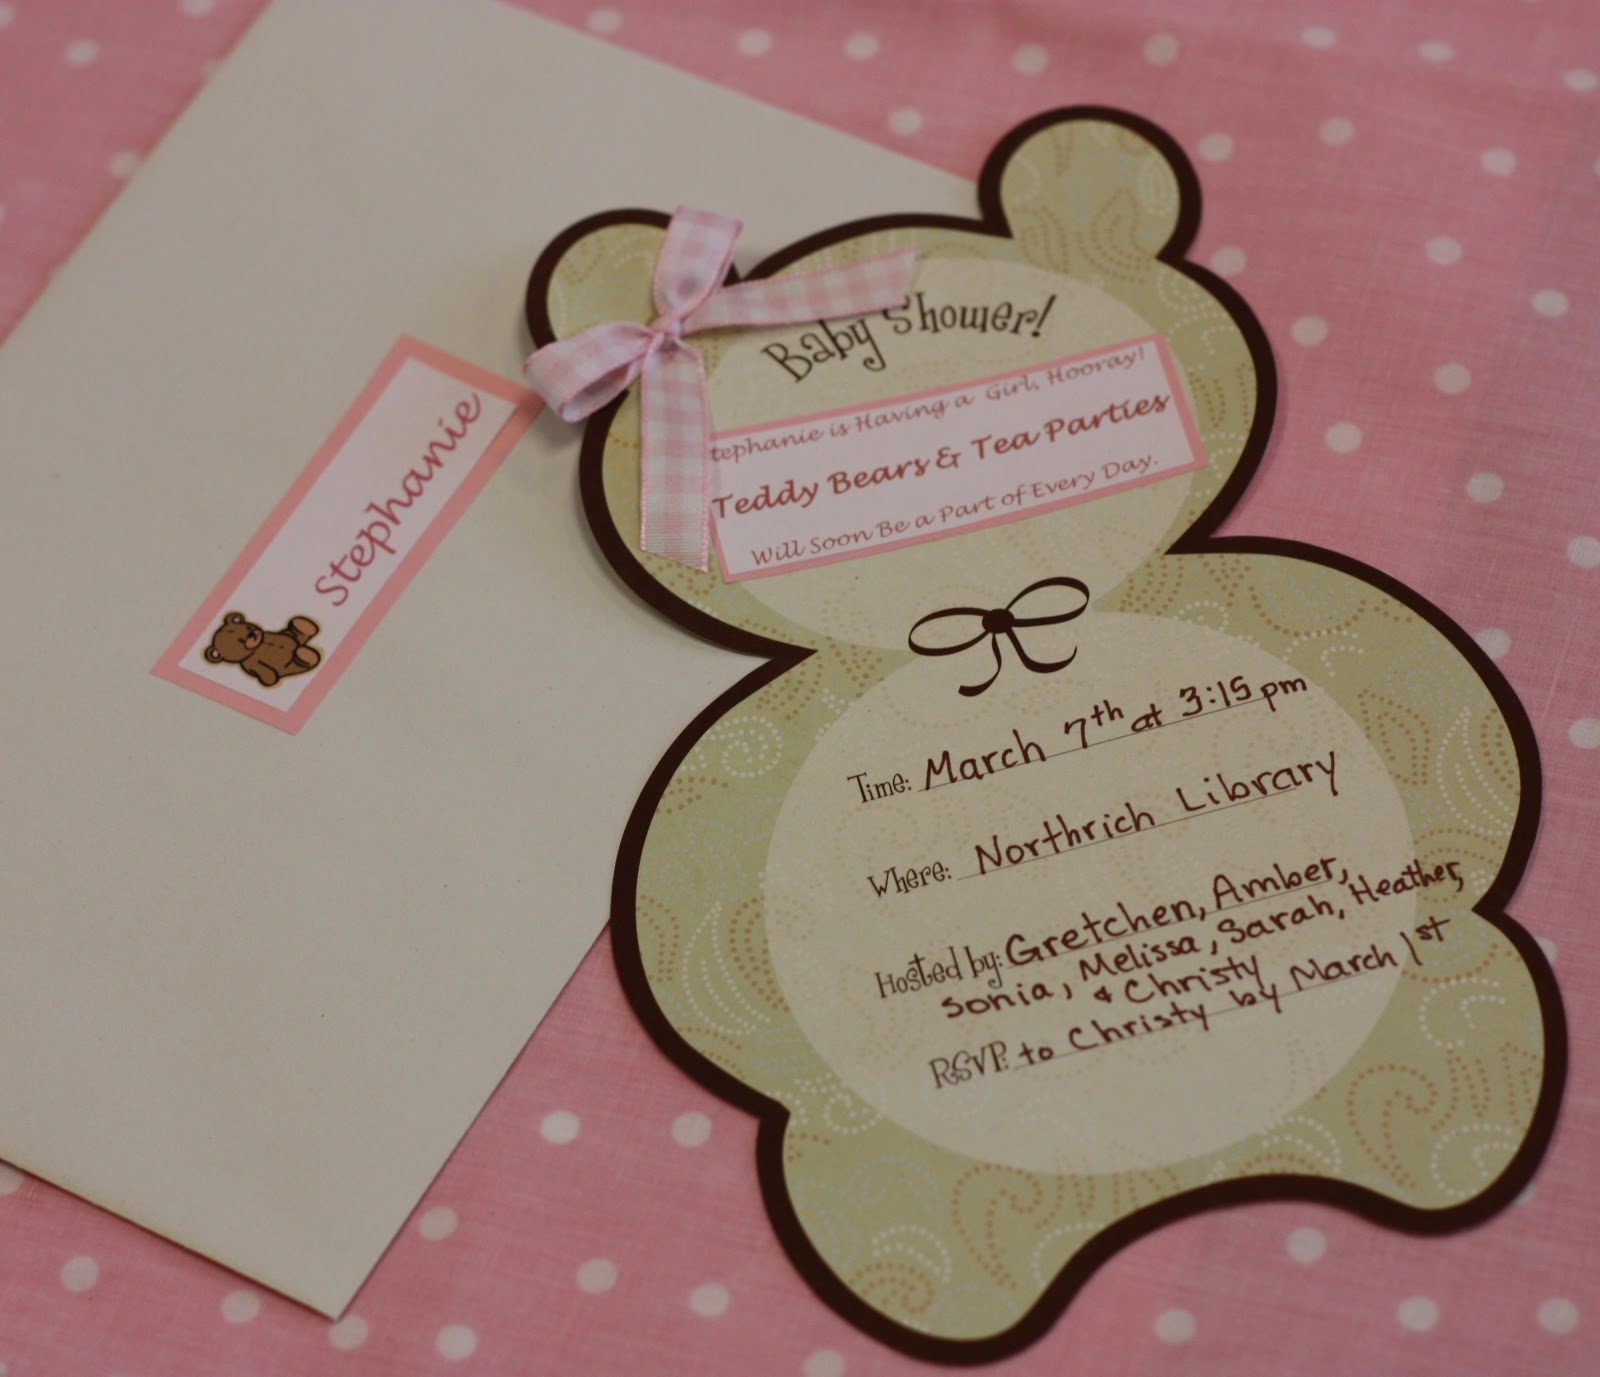 Christy Teddy Bears and Tea Parties Shower Invitation